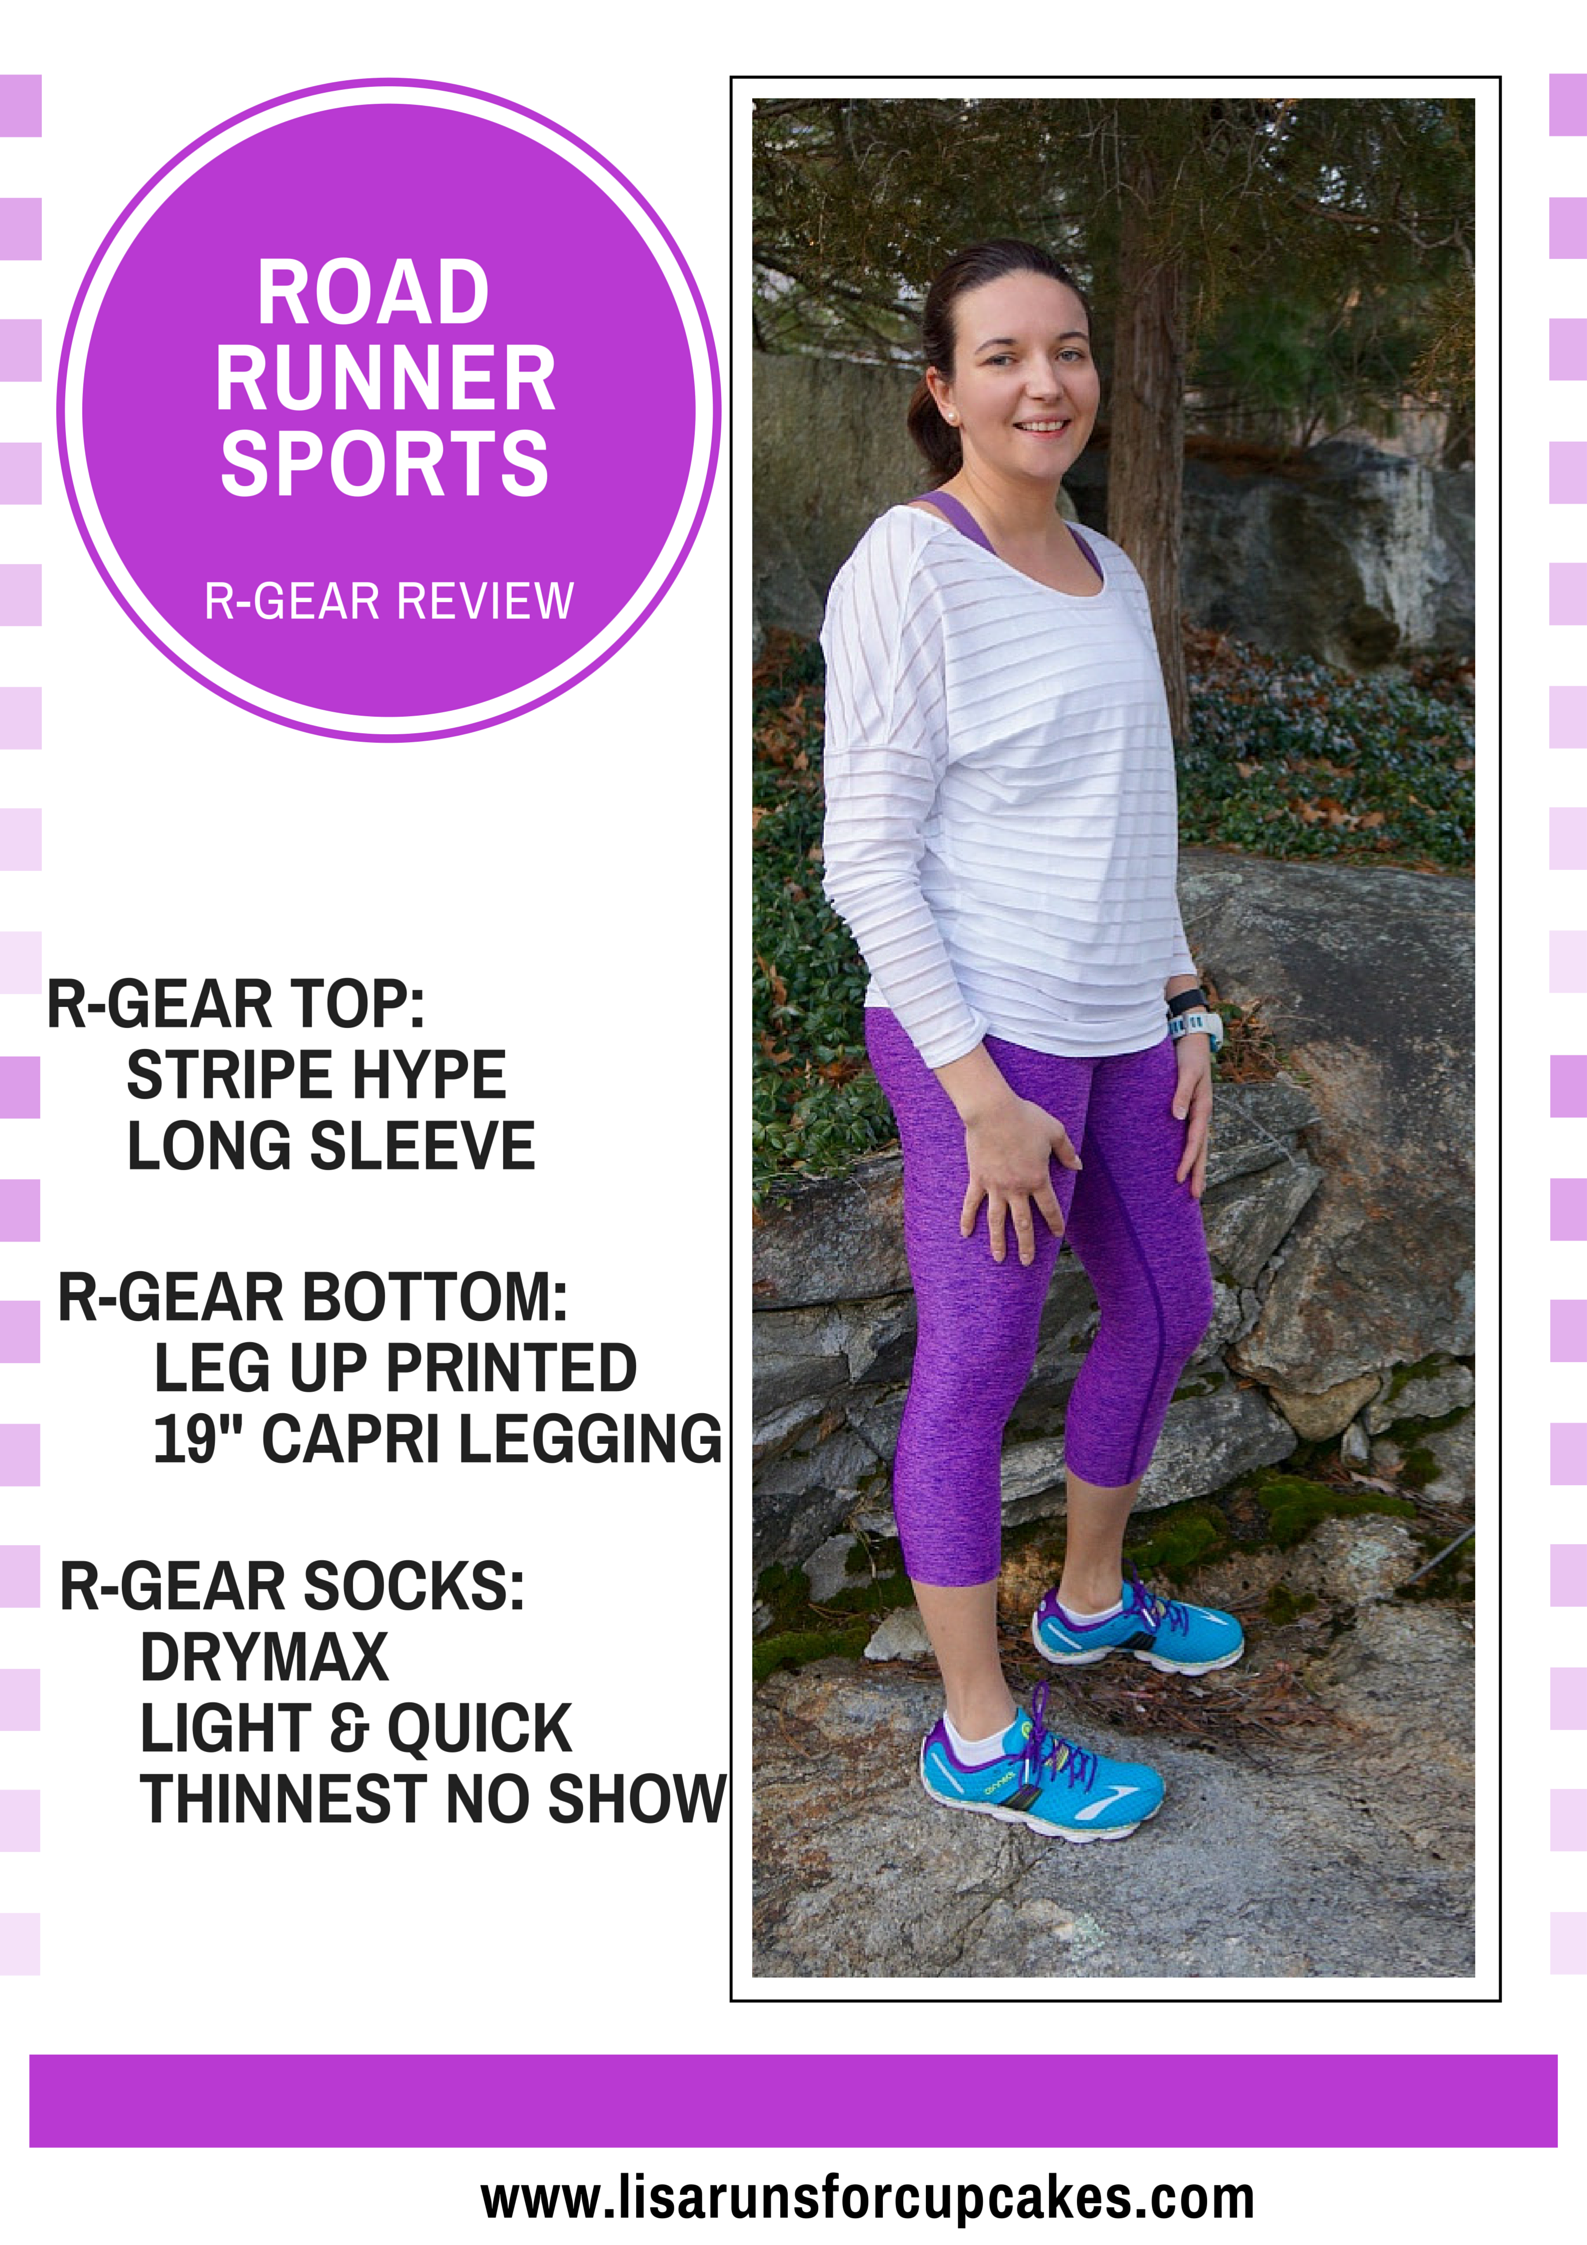 Road Runner Sports R-Gear Review